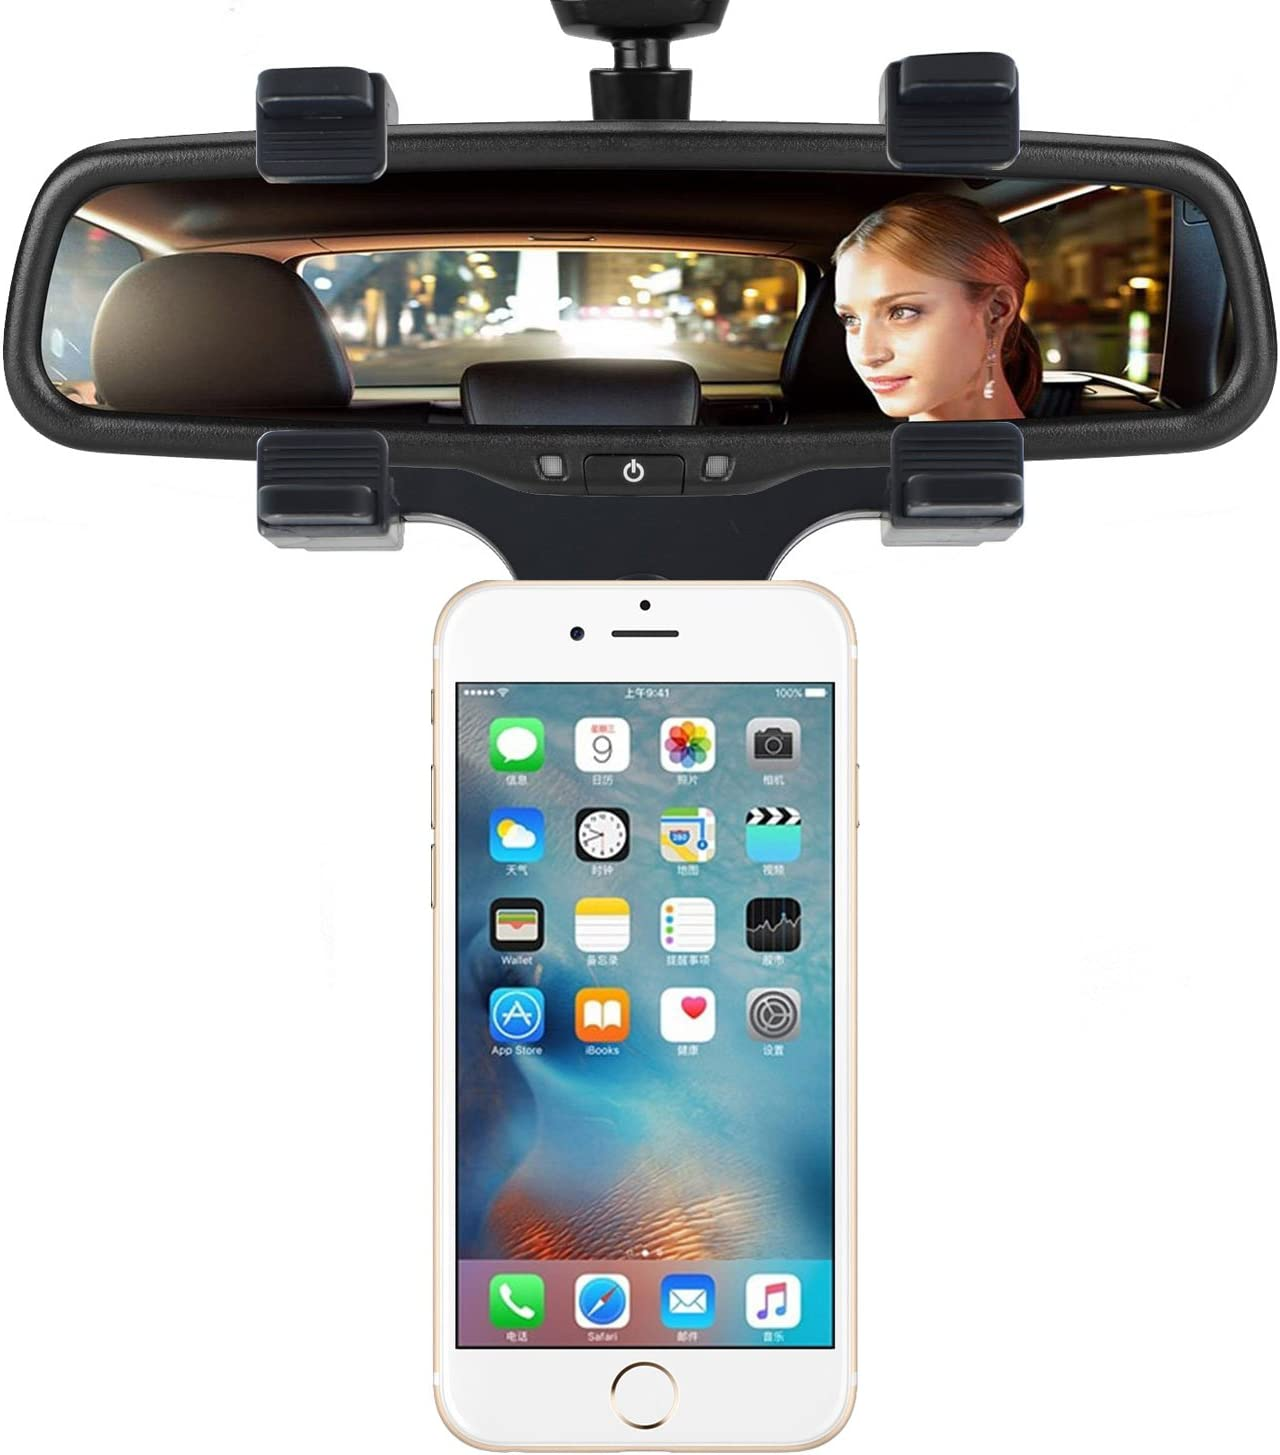 INCART Magnetic Car Rearview Mirror Mount Car Phone Holder for iPhone X//8//8Plus//7//6s Samsung Galaxy S8//S7//S6 Edge Google Nexus Black GPS//PDA // MP3 // MP4 Devices and More